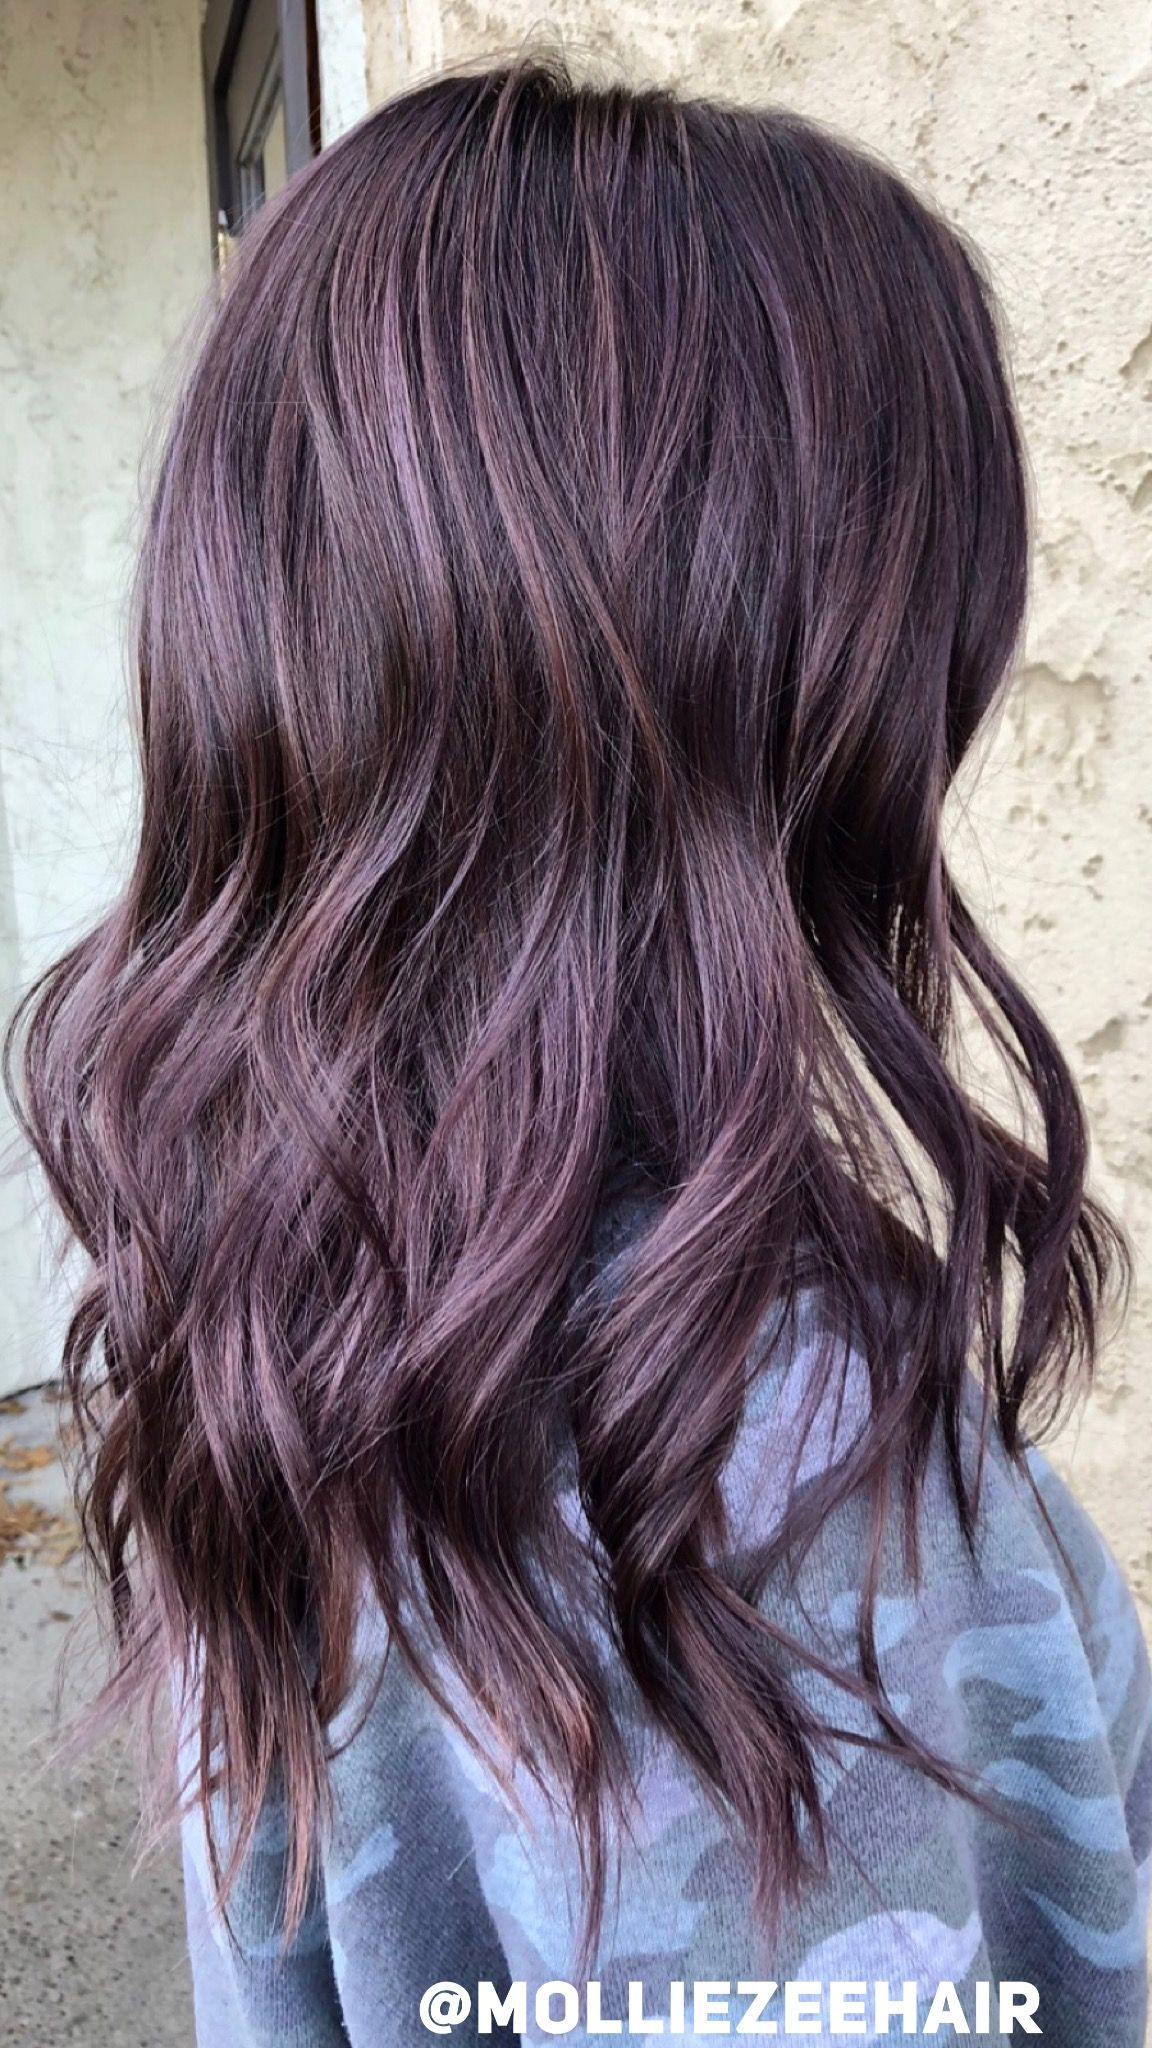 Chocolate Lavender Deliciousness Molliezeehair Hair Color Chocolate Cool Hair Color Lavender Hair Colors